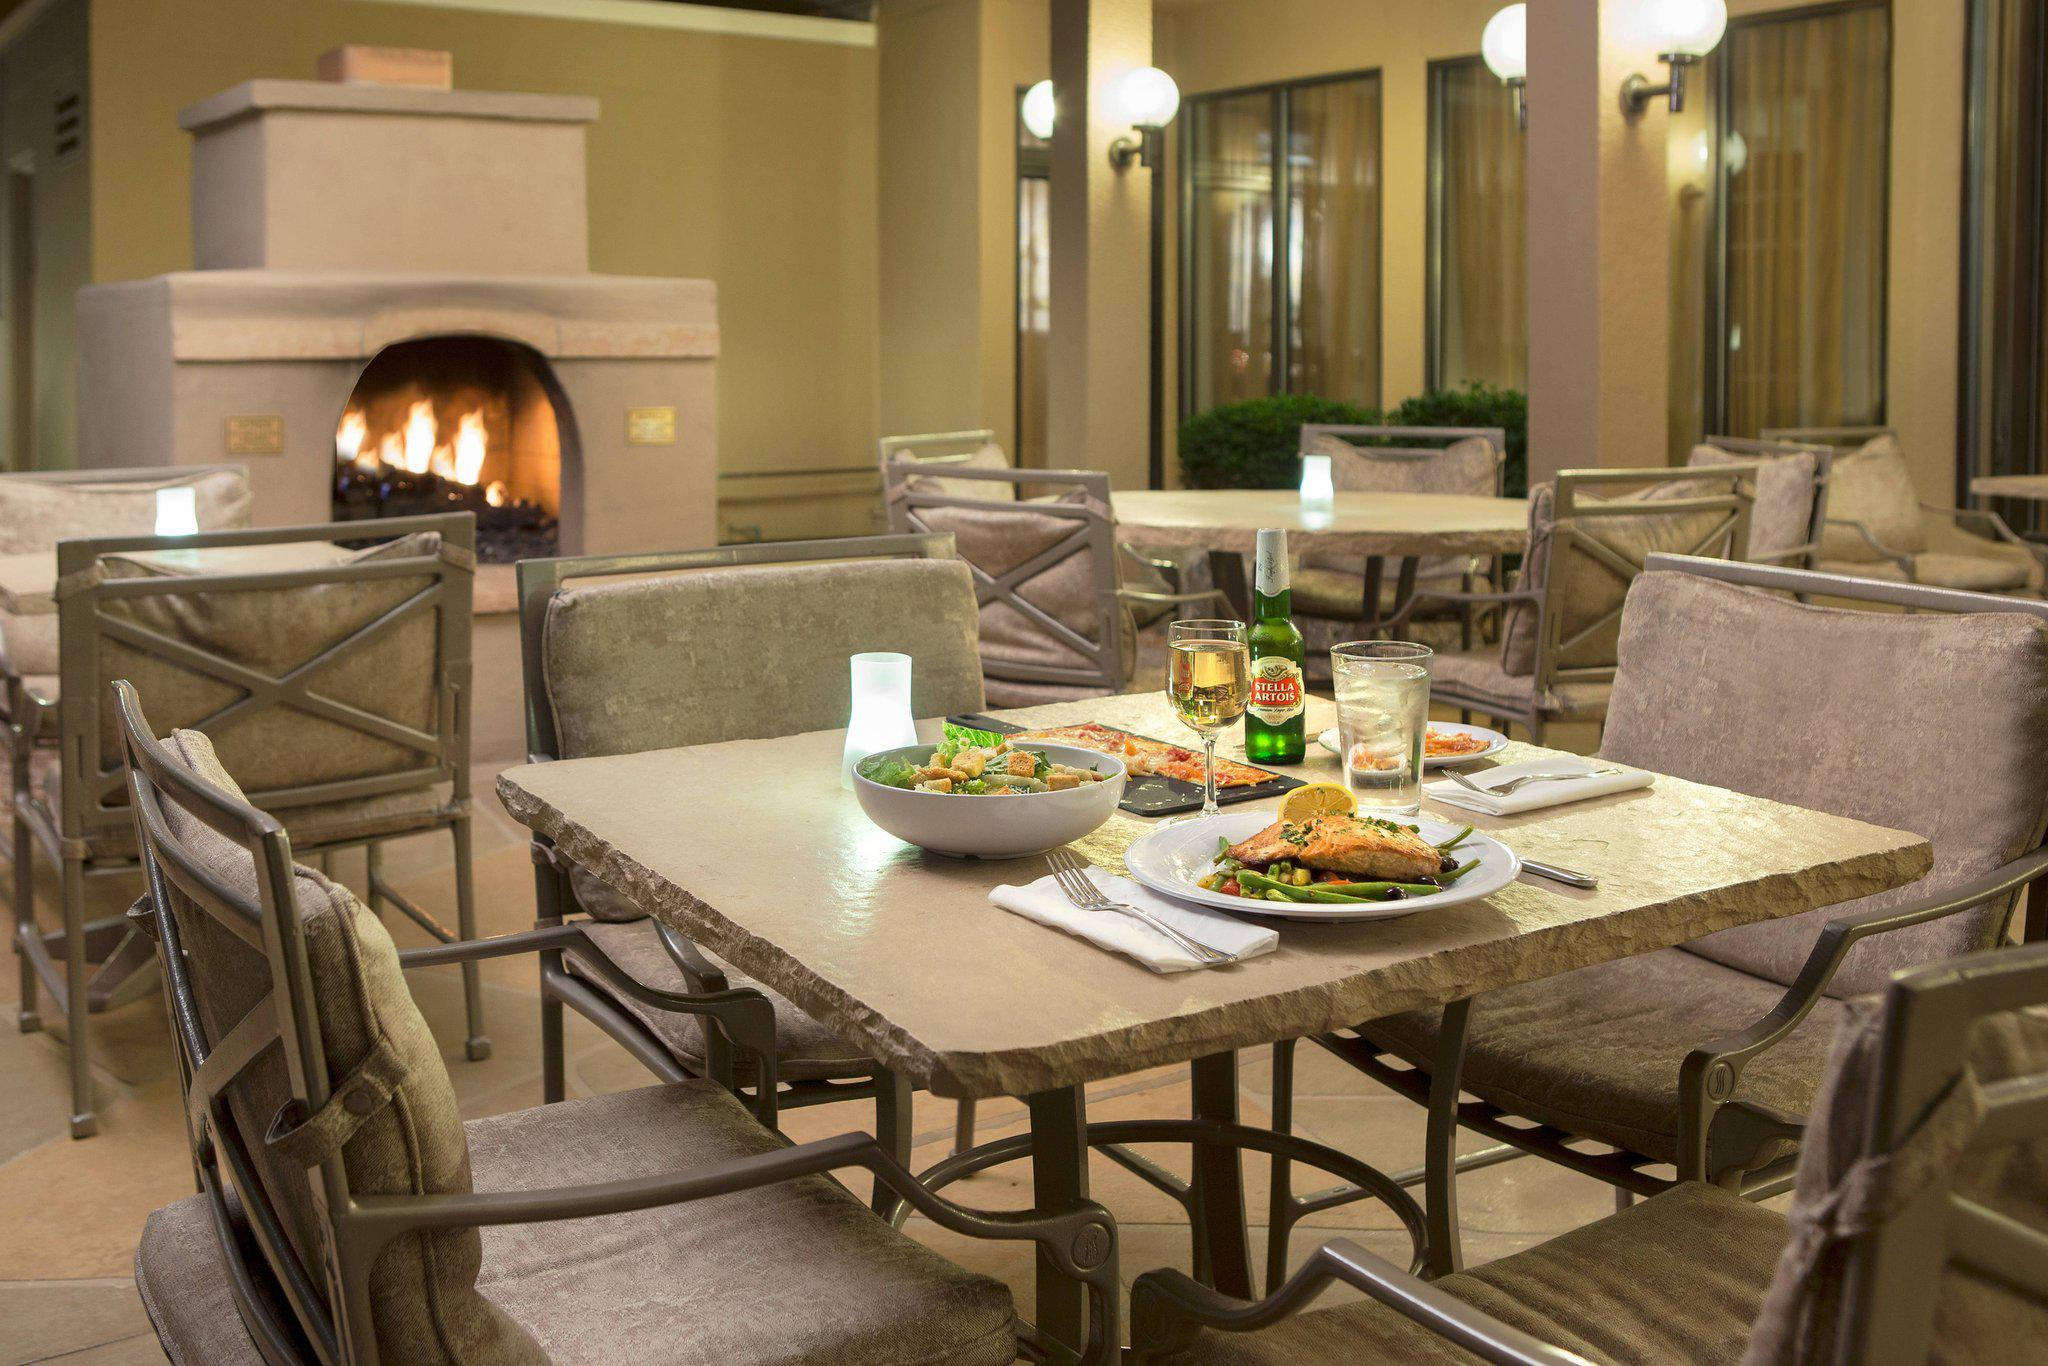 Courtyard by Marriott Scottsdale at Mayo Clinic